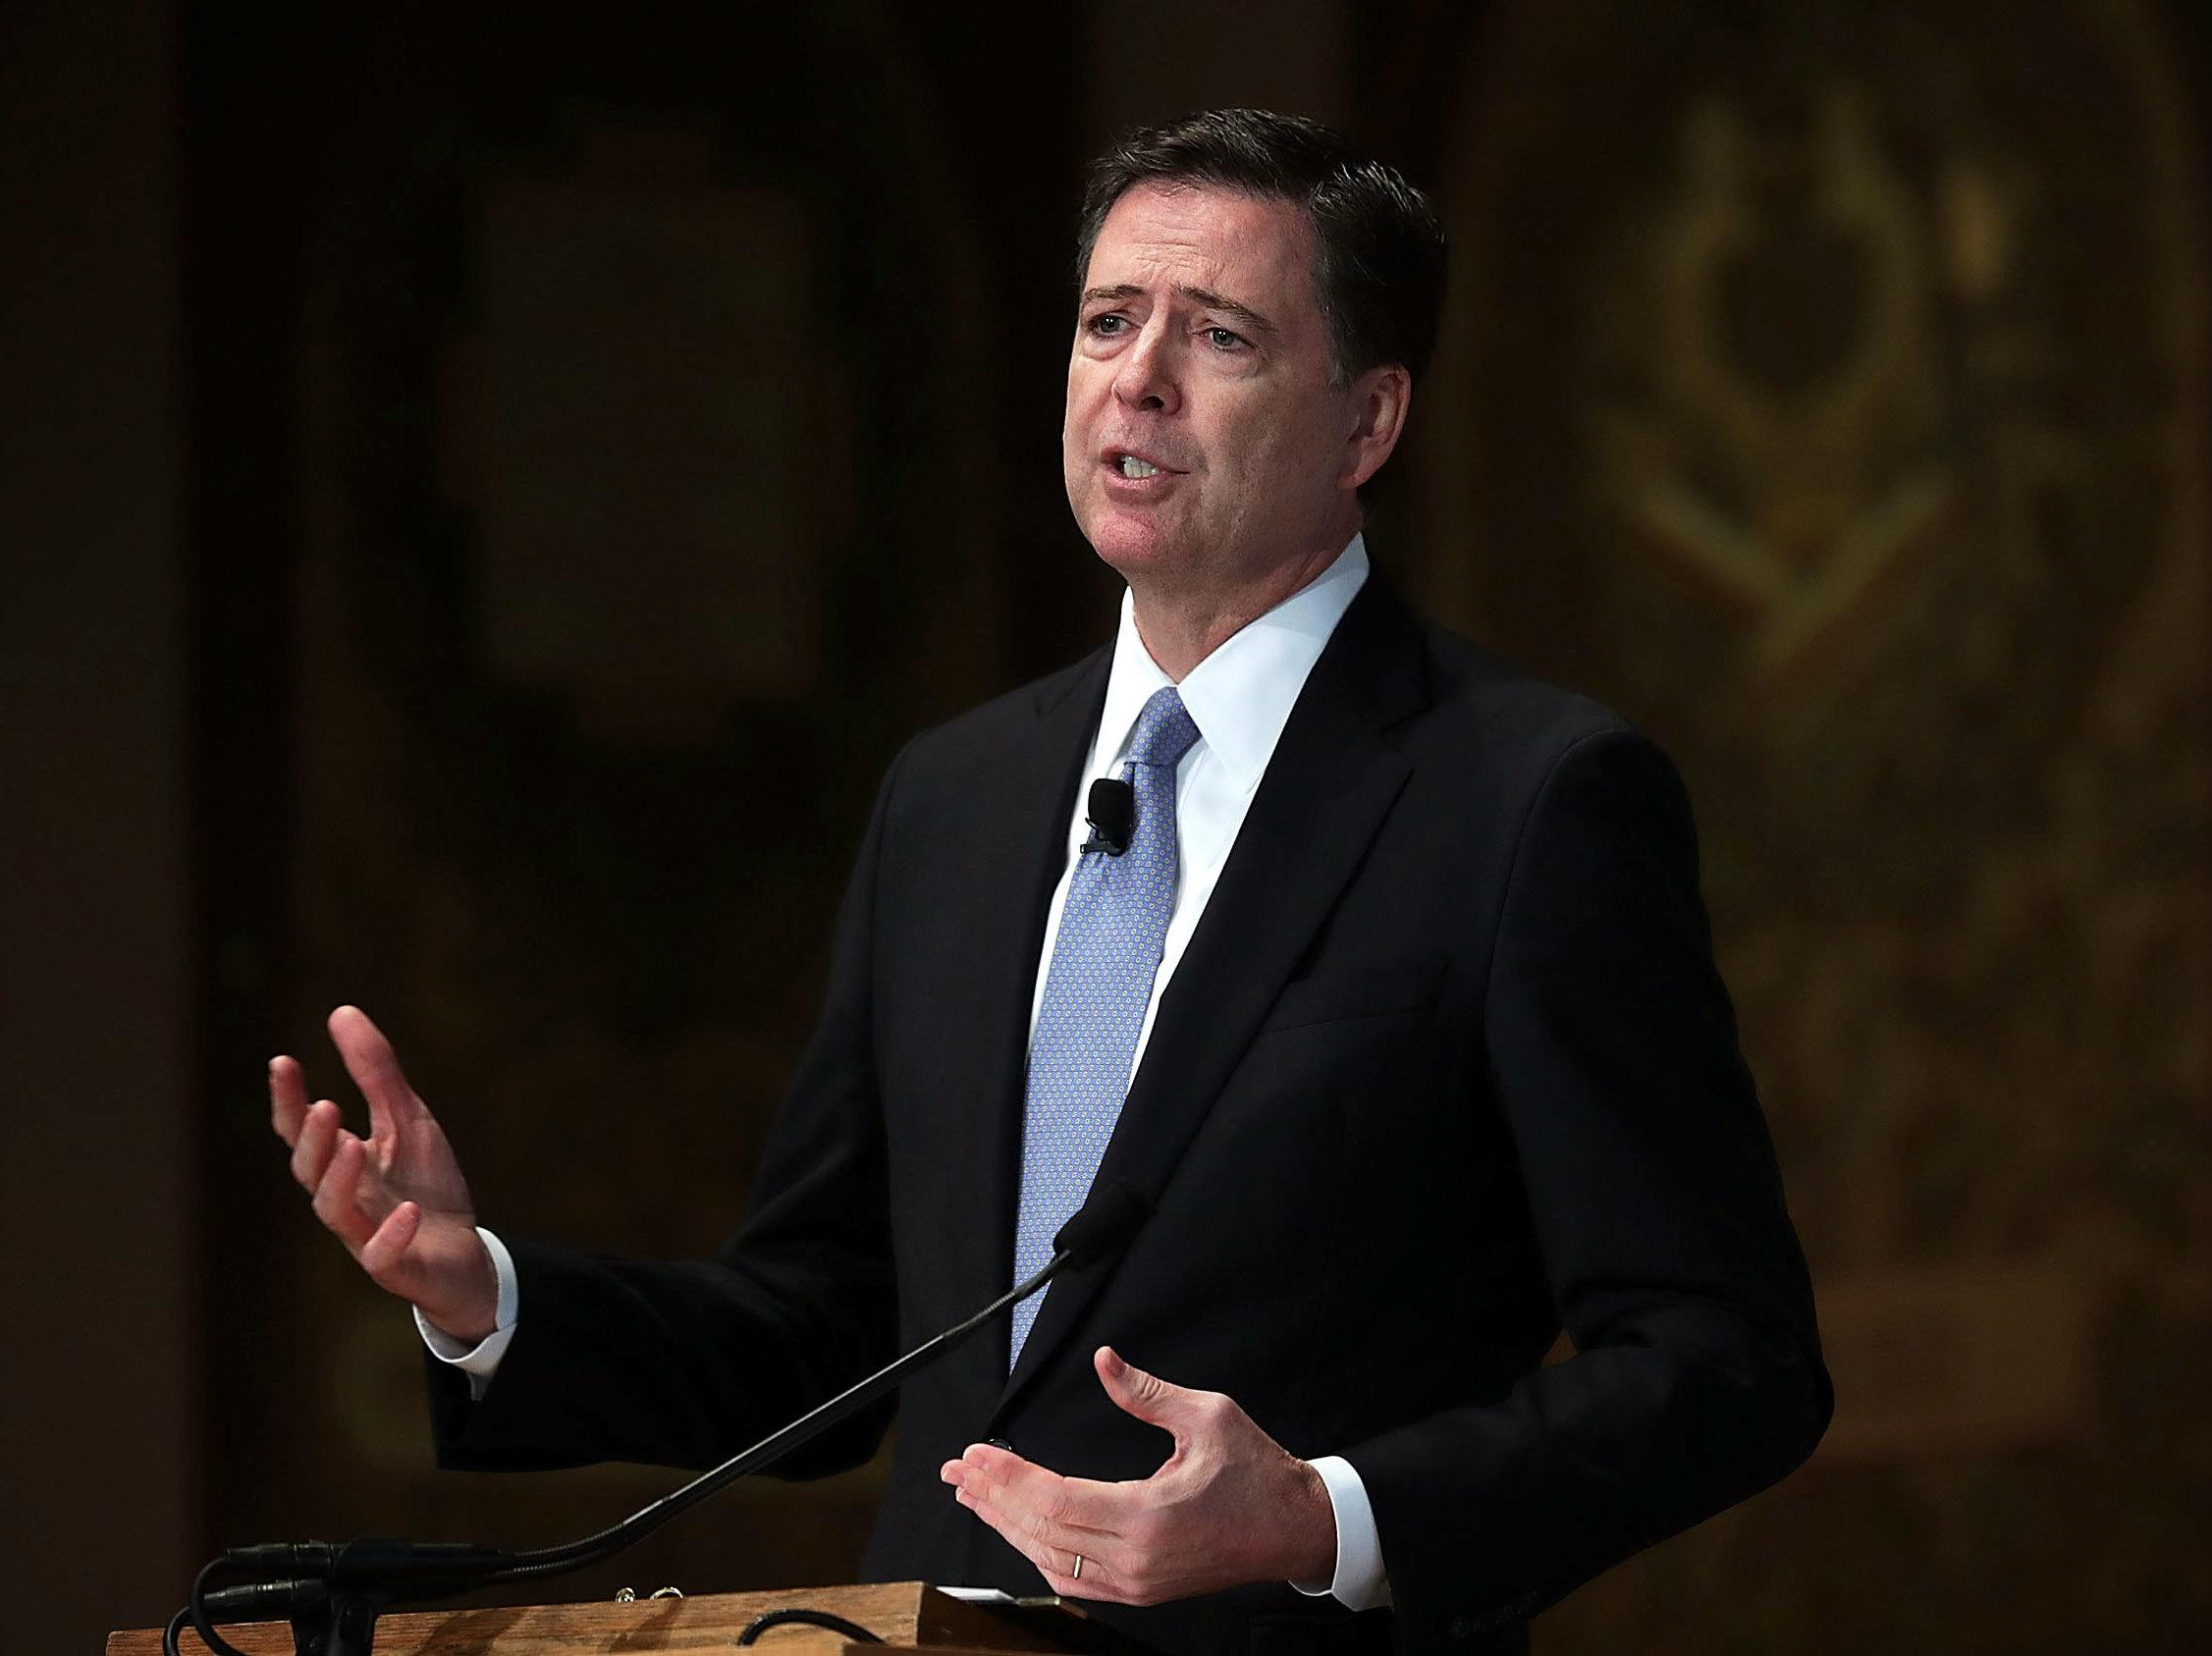 Howard University Signs Comey As Convocation Speaker